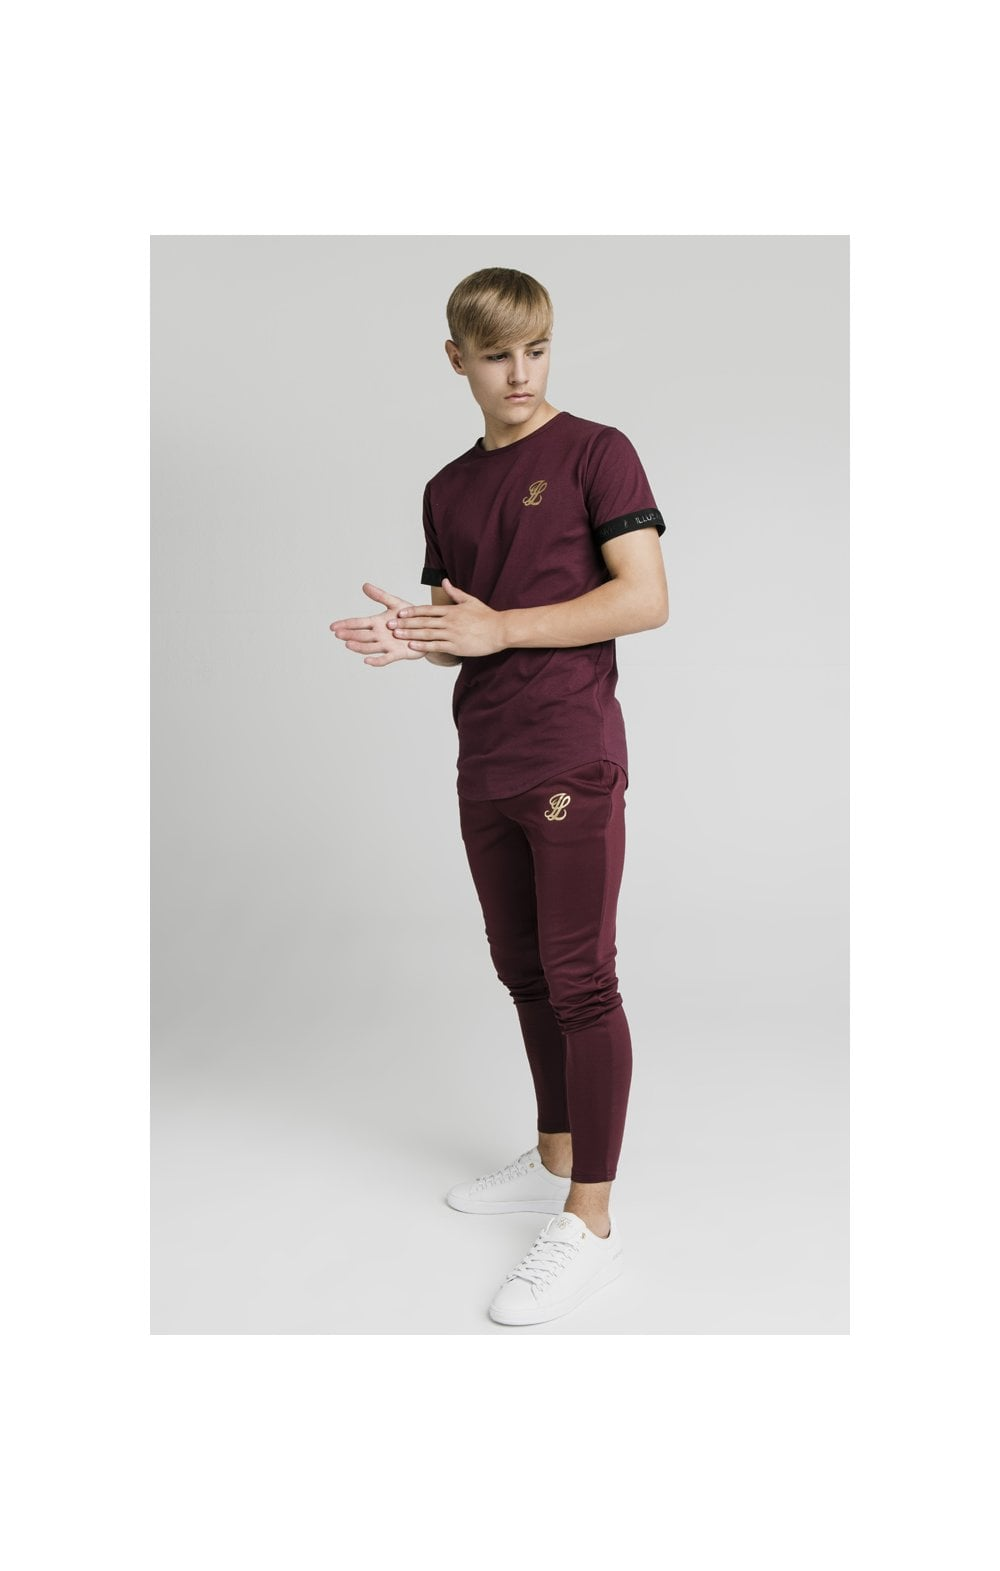 Illusive London Agility Track Pants - Burgundy (6)